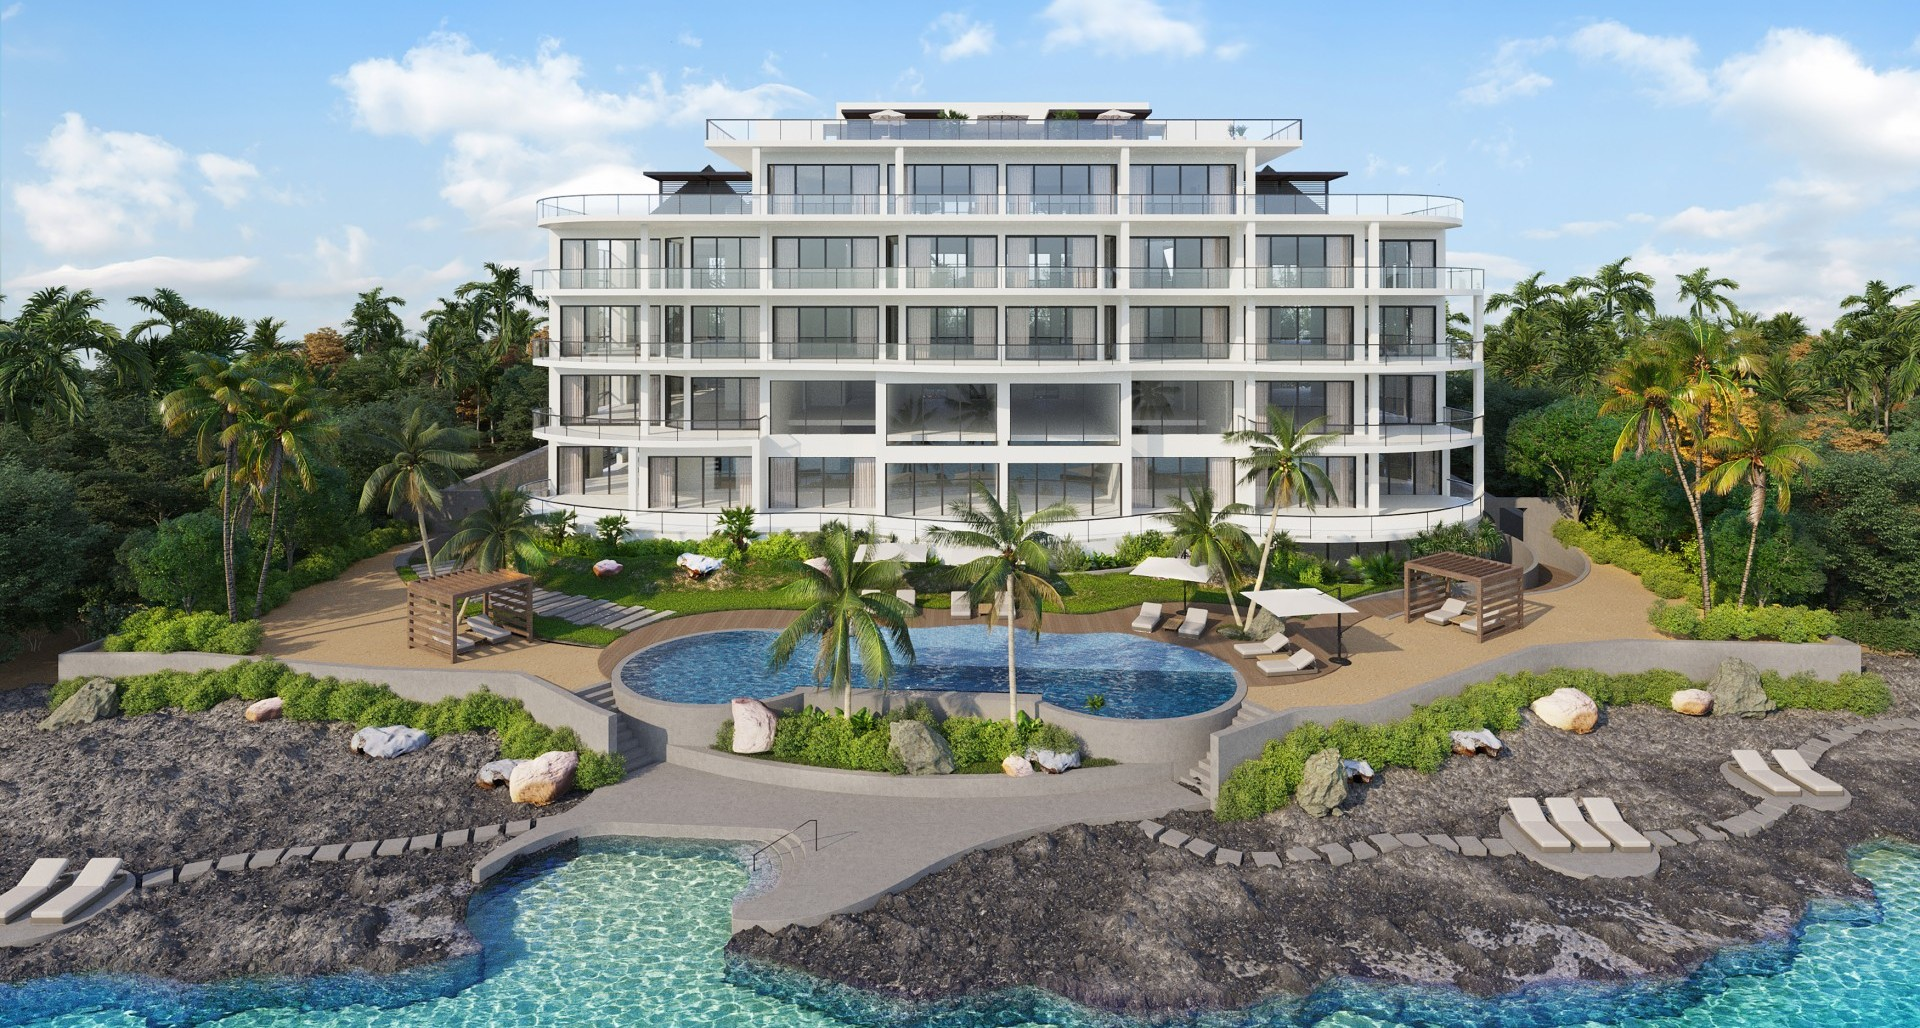 RE/MAX real estate, Cayman Islands, W Bay Bch South, Freehold - Imagine the joy, eve